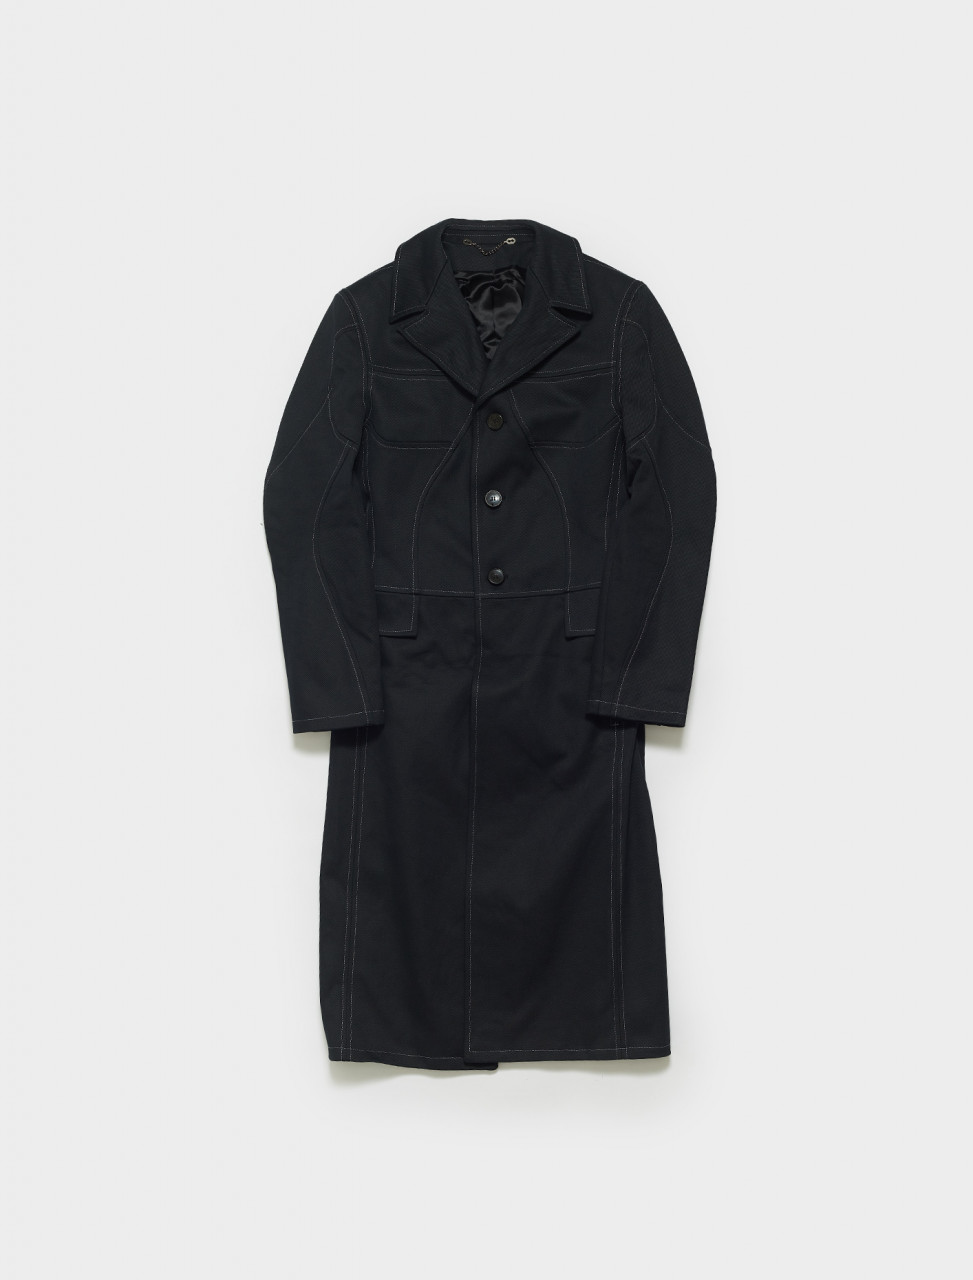 AFSOON_M-BLACK GMBH AFSOON STRUCTURED COAT BLACK